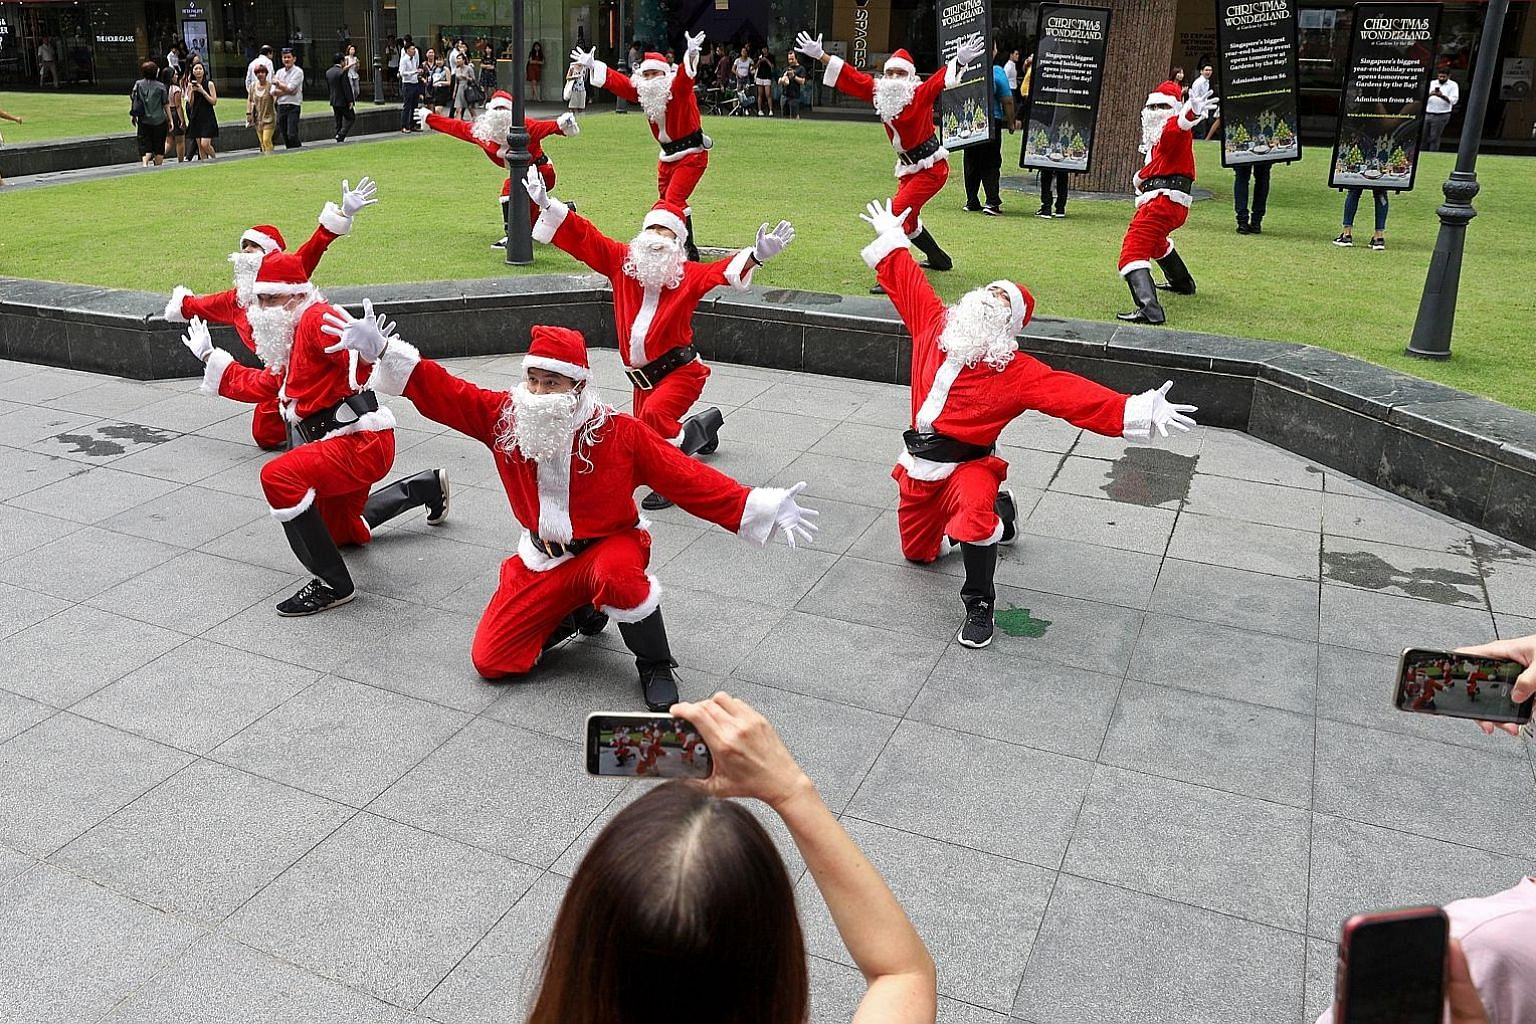 Santas dancing during a flash mob in front of One Raffles Place around 1pm yesterday. There were 10 people in total who were decked from head to toe in Santa Claus outfits to publicise Christmas Wonderland 2019. After the dance, they posed for photos